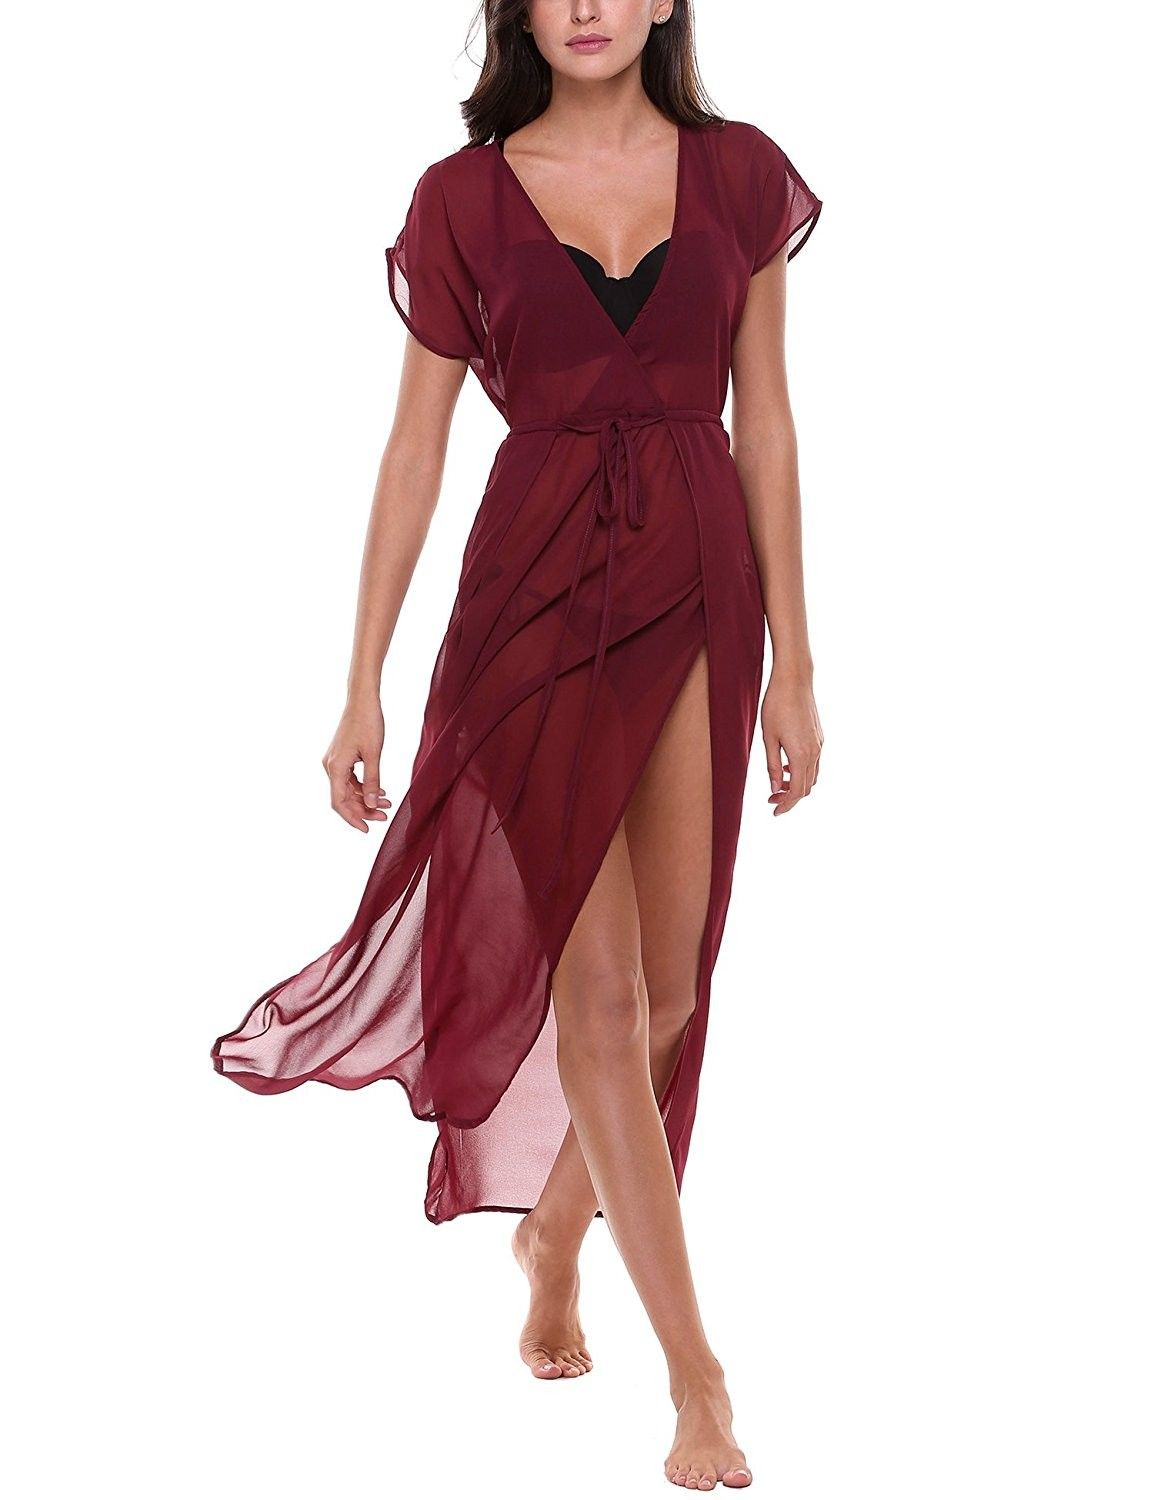 7ed378fe9c988 Chiffon See-Through Deep V-Neck Side Slits Bikini Cover Up Maxi Beach Dress  With Belt - A-wine Red - C5184HLD924,Women's Clothing, Swimsuits & Cover  Ups, ...